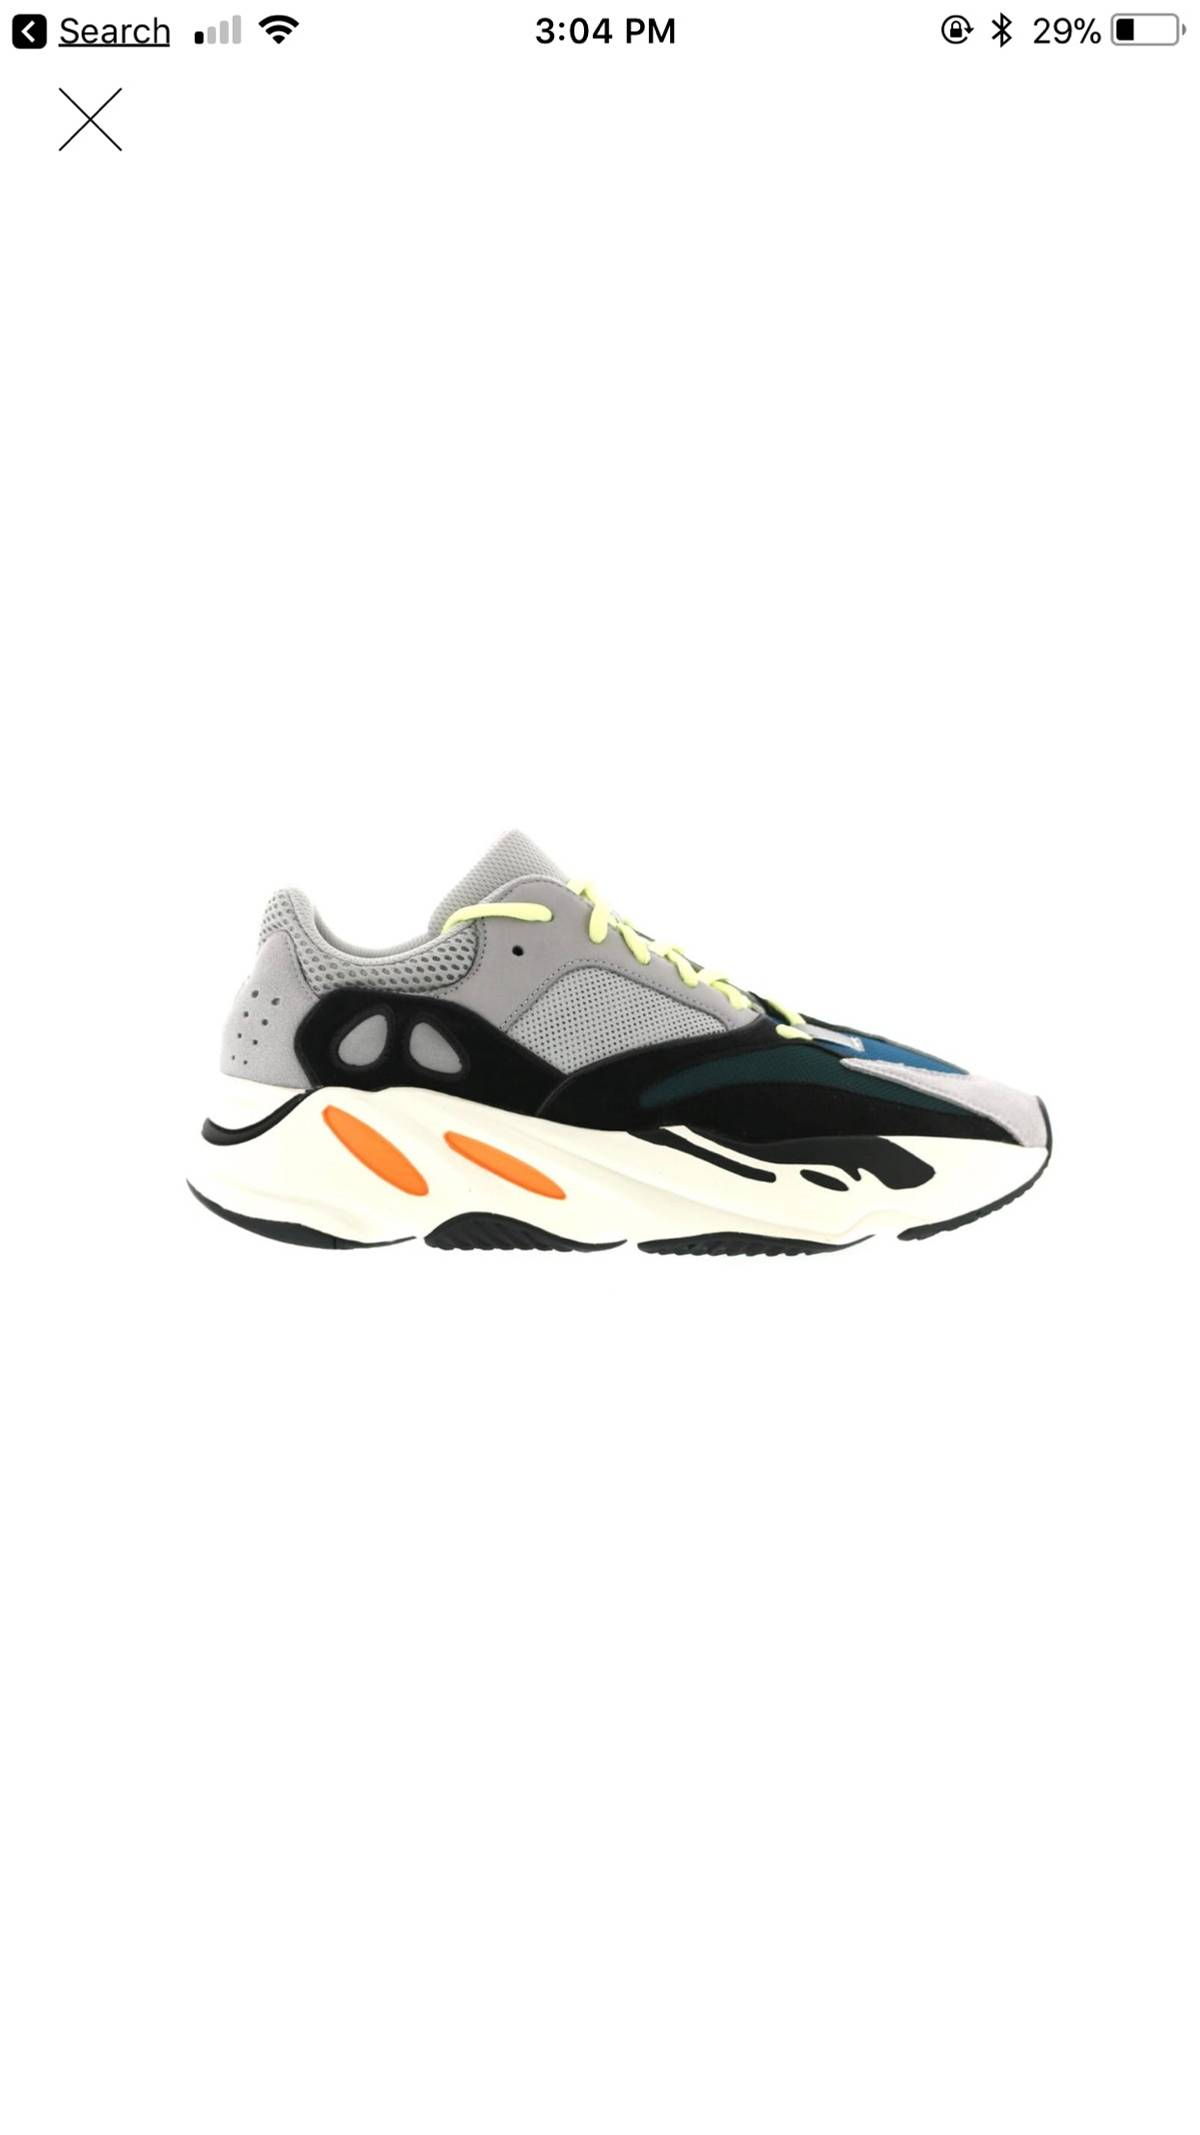 finest selection 78728 bd363 Adidas Kanye West Yeezy Wave Runner 700 Size 7.5 $607